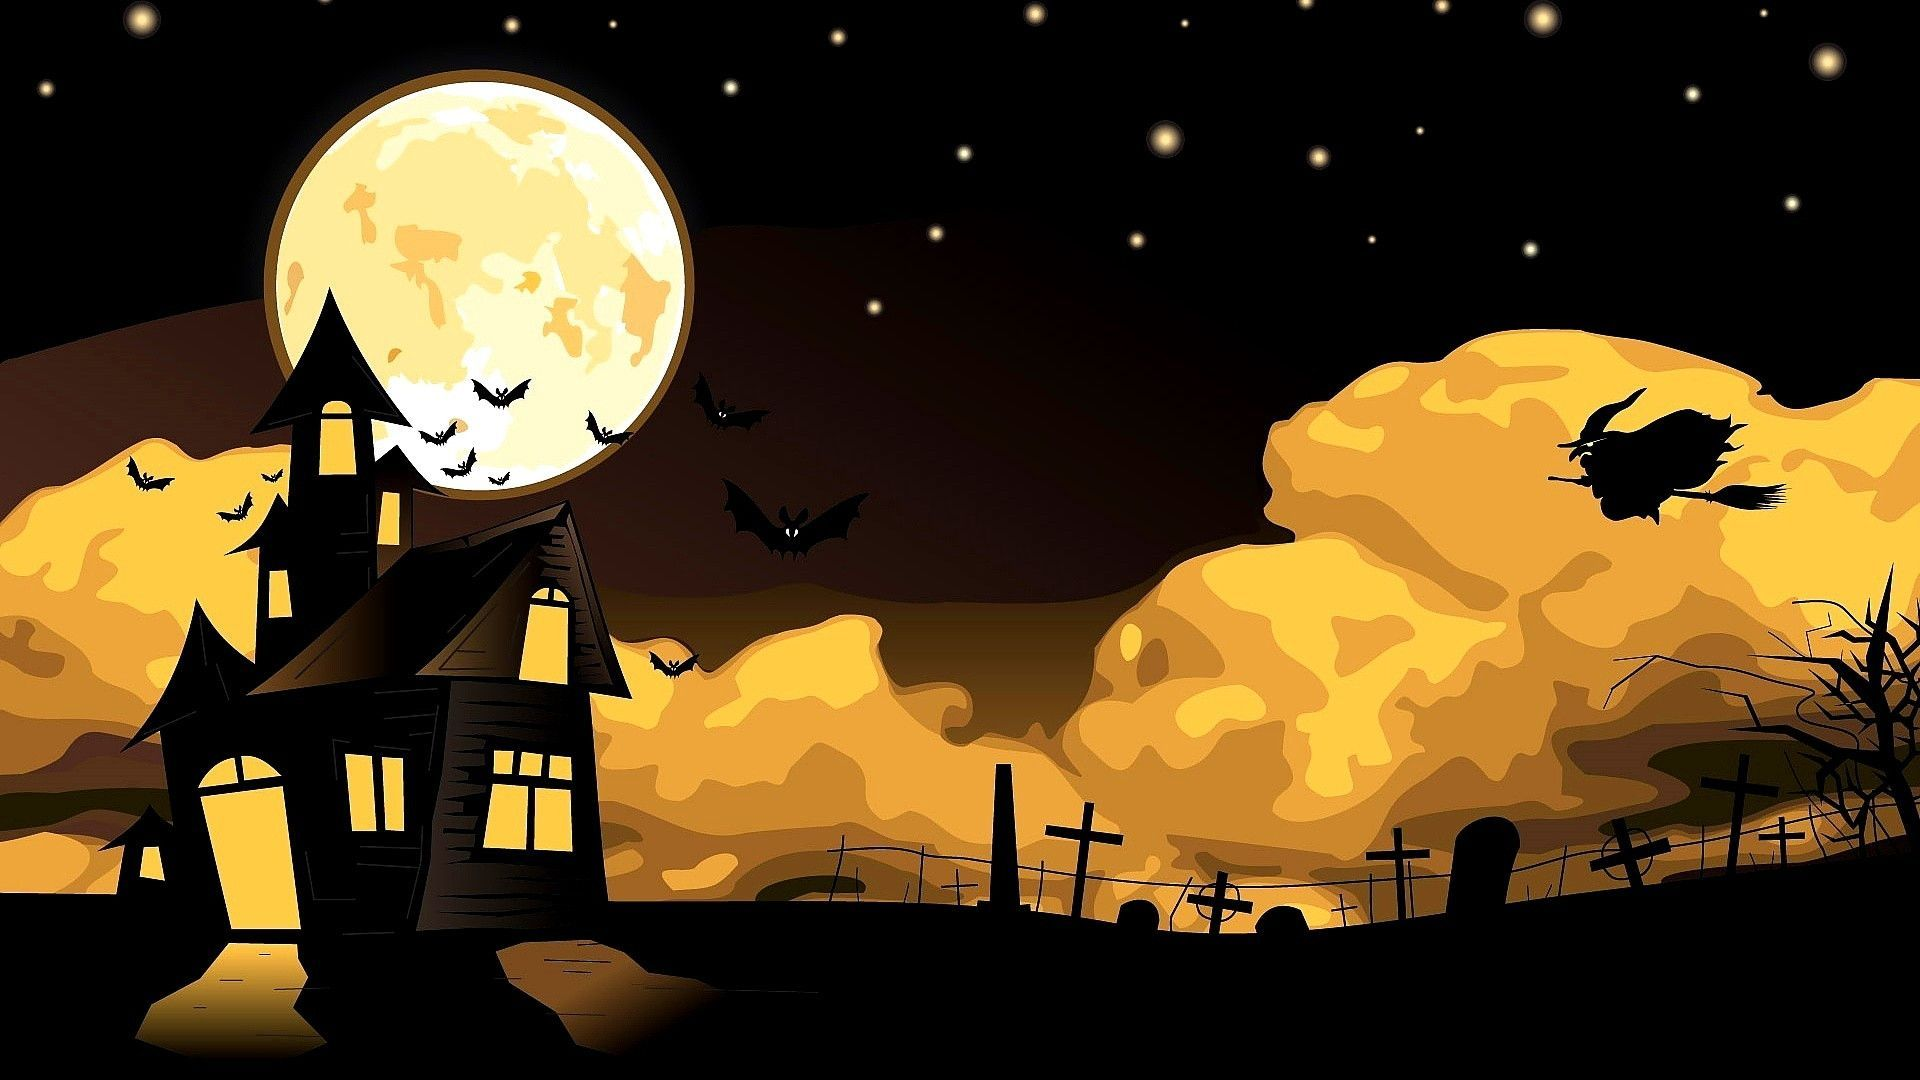 1920x1080 Halloween Wallpapers - Wallpaper Cave